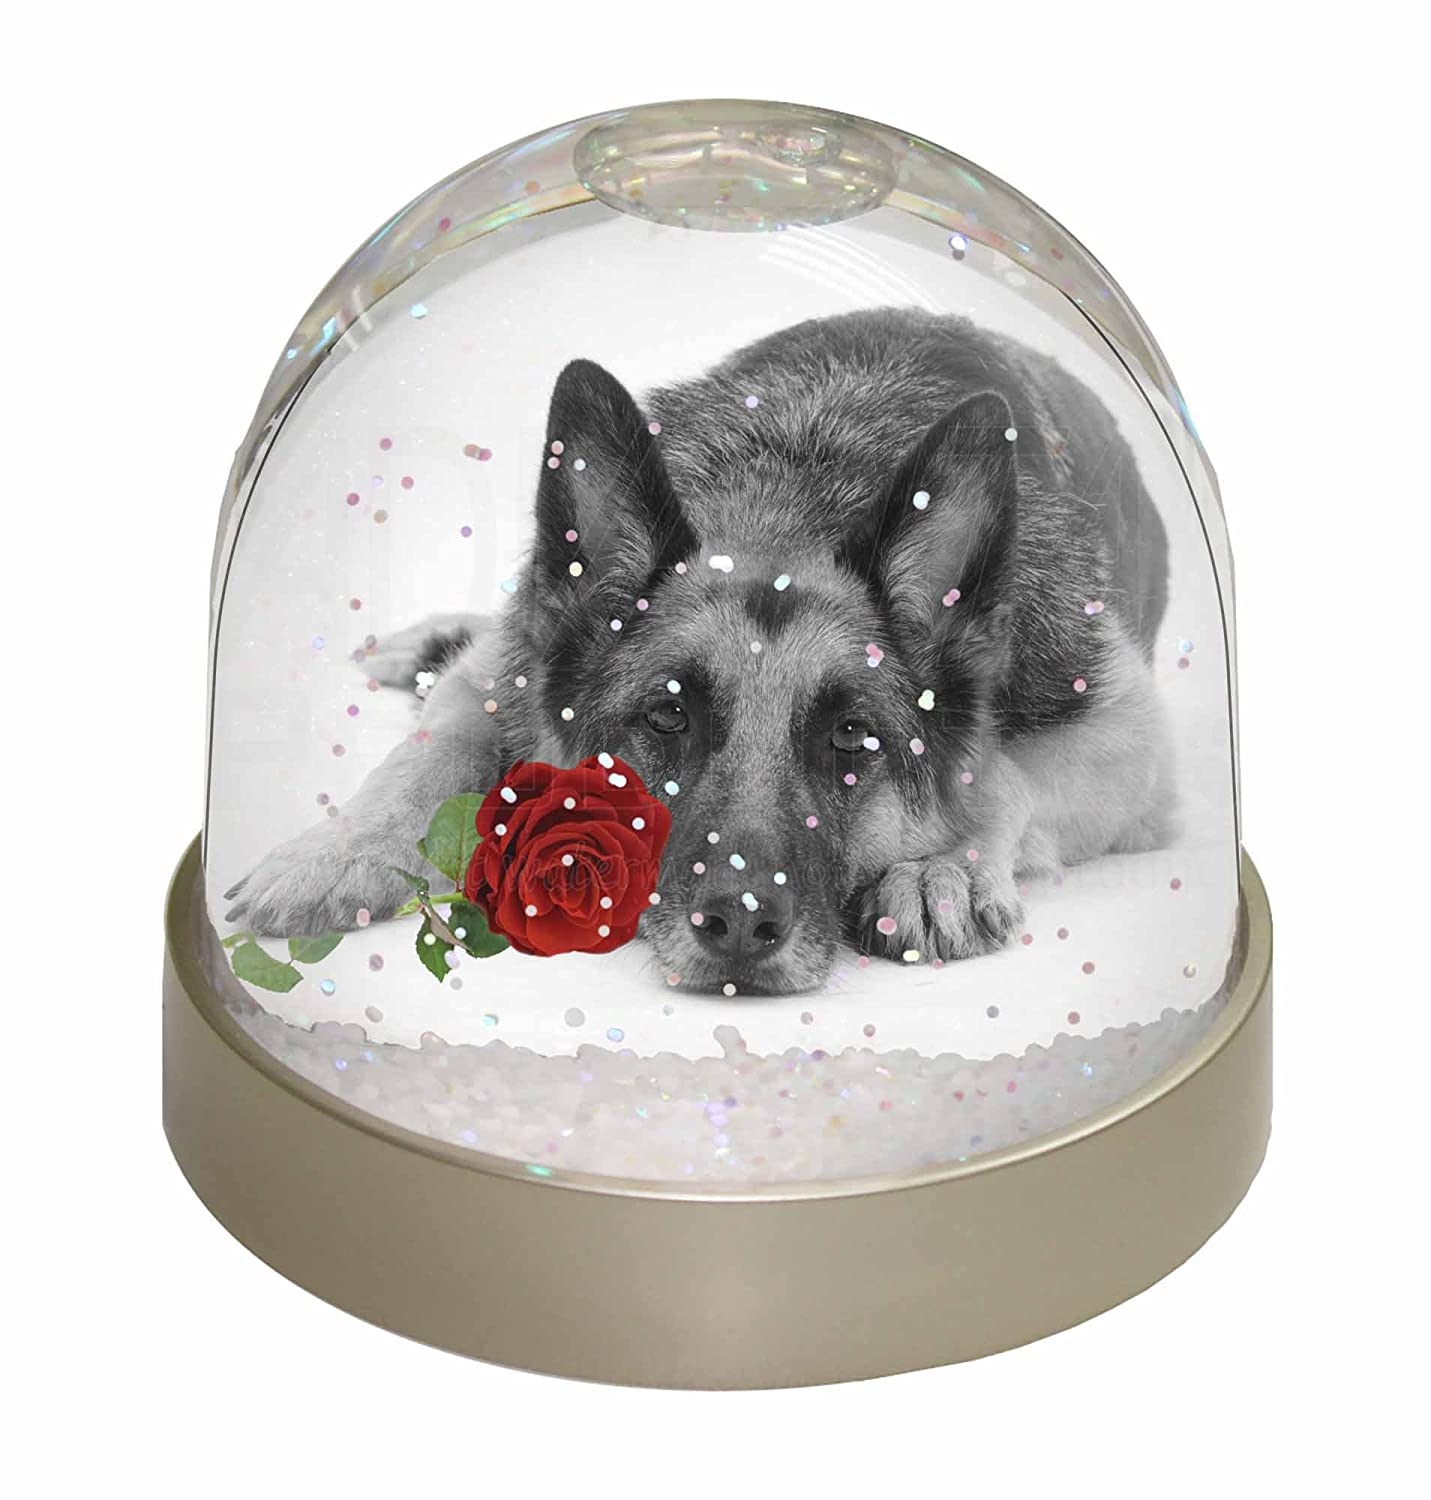 Advanta German Shepherd with Red Rose Photo Snow Globe Waterball Stocking Filler Gift, Multi-Colour, 9.2 x 9.2 x 8 cm Advanta Products AD-GS1R2GL